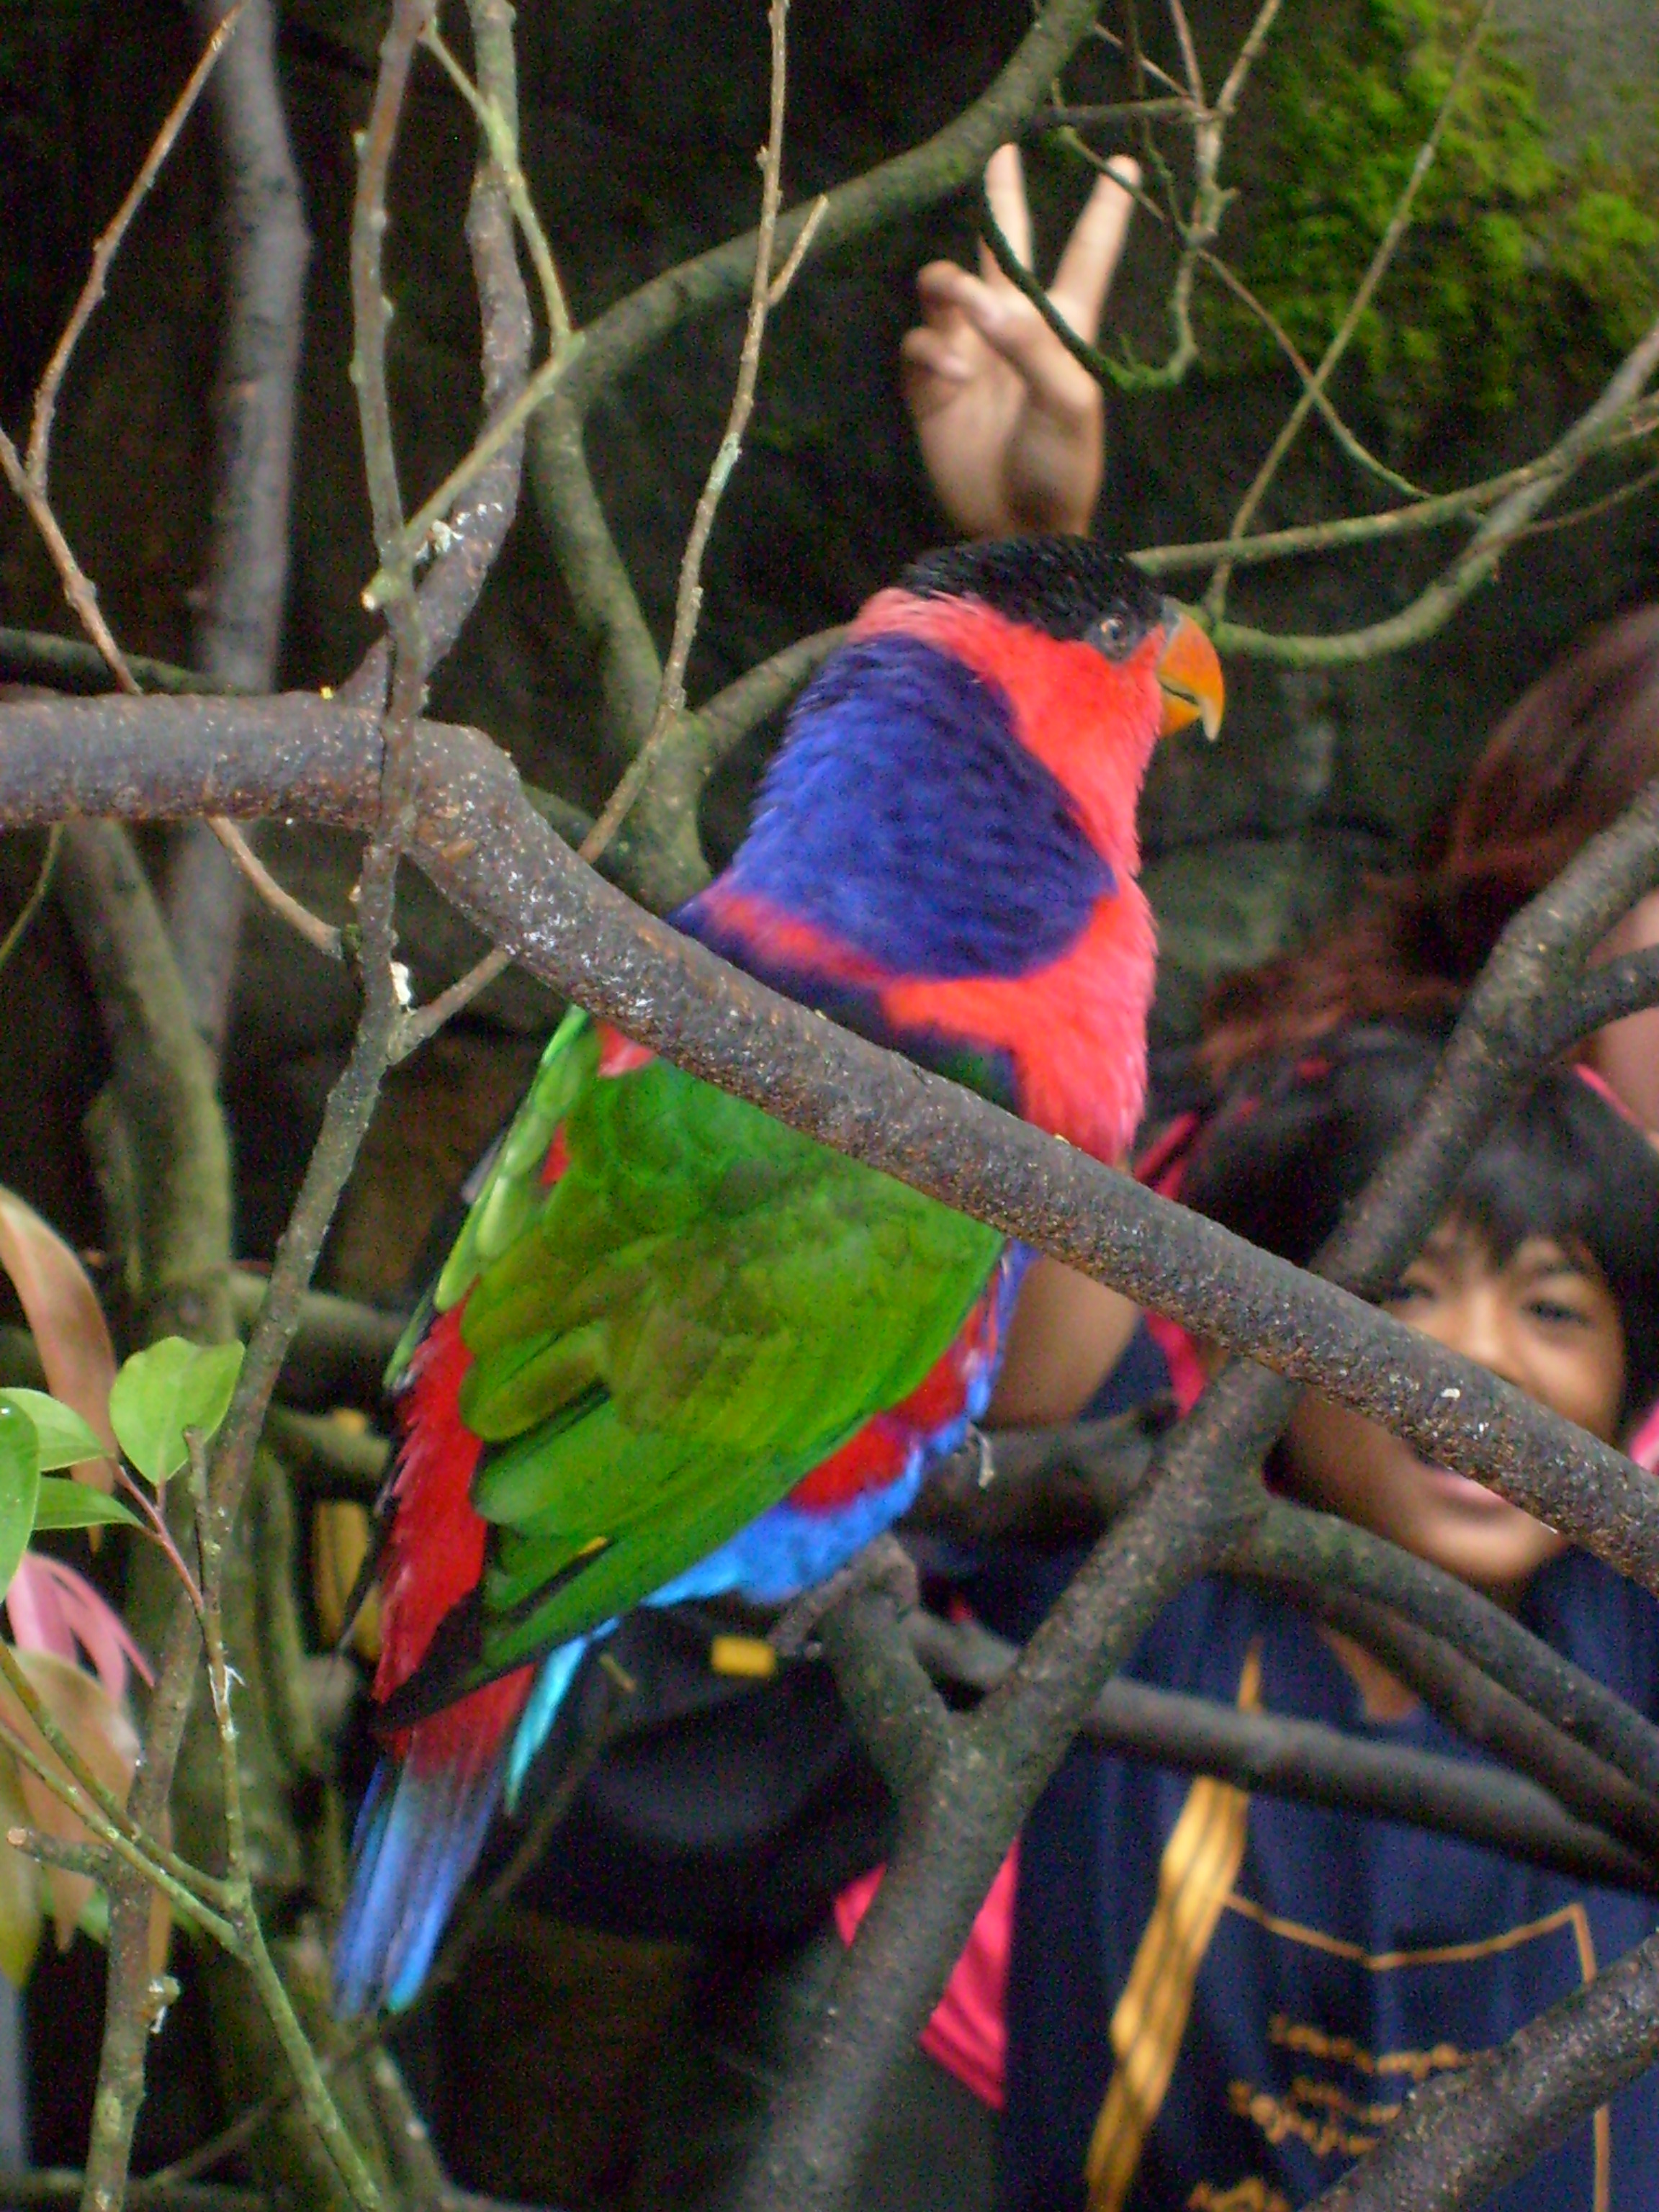 Parrot, Bird, Colored, Feathers, Tree, HQ Photo